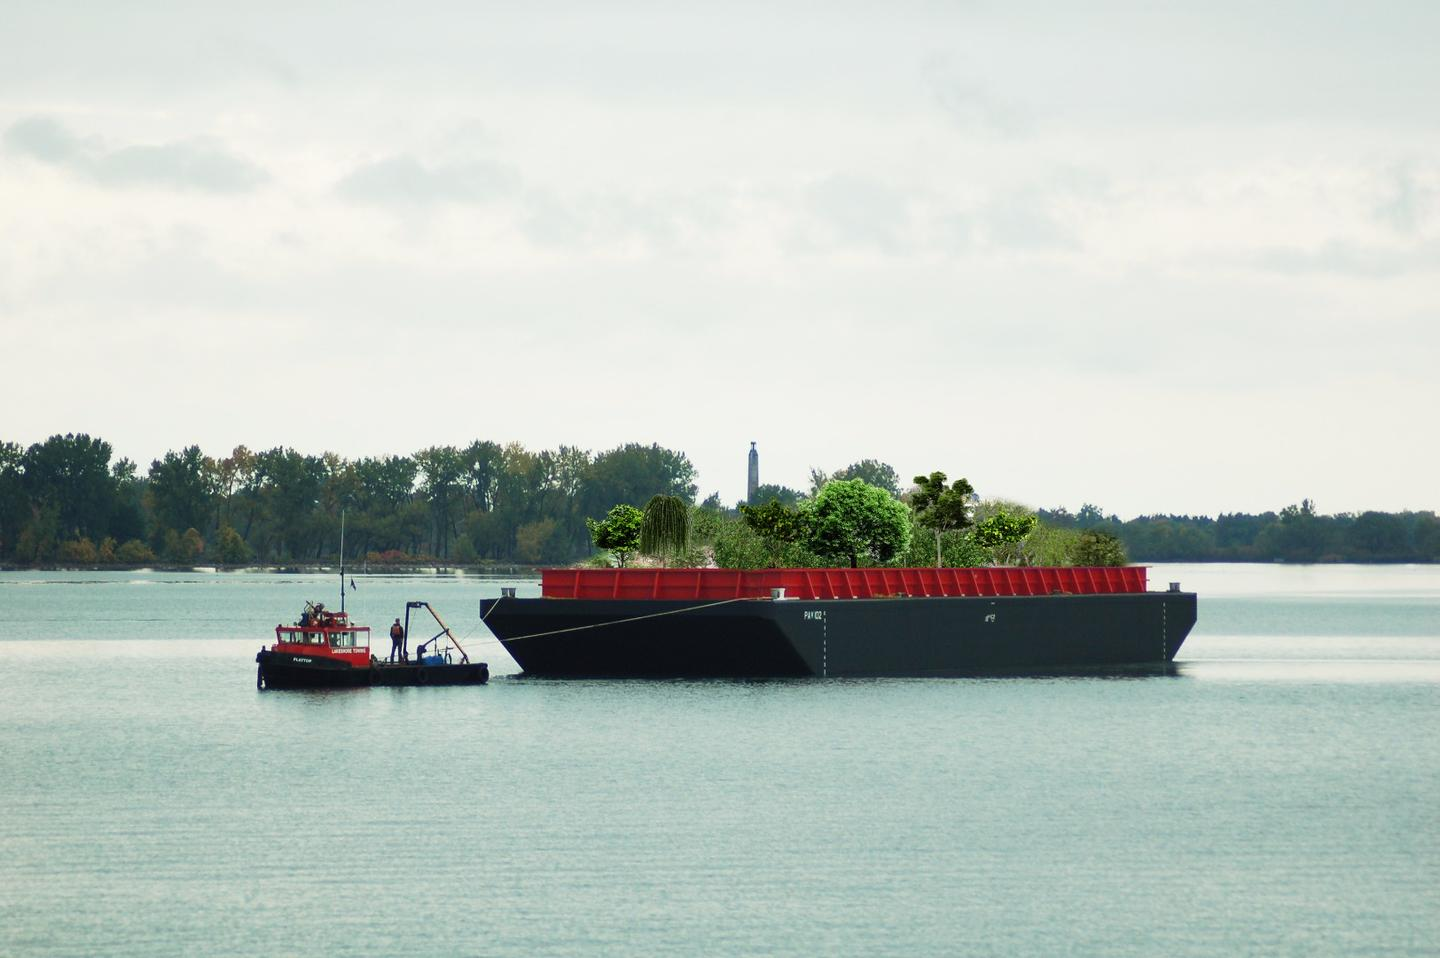 The Swale farm is being installed on a 30 x 100-ft (9.1 x 30.5-m) flat deck barge